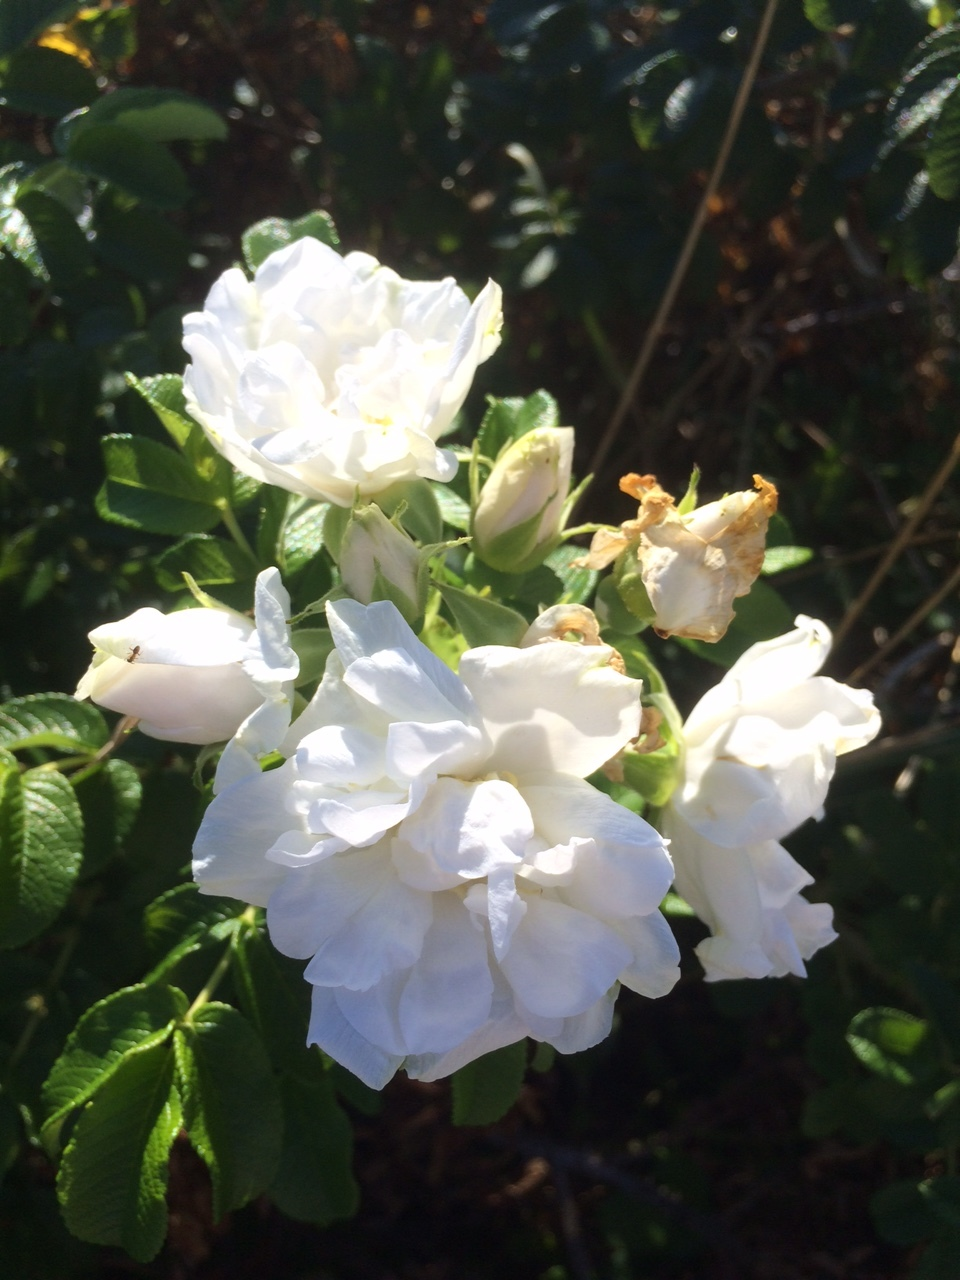 Beach Roses are blooming their last blooms. They smell amazing.